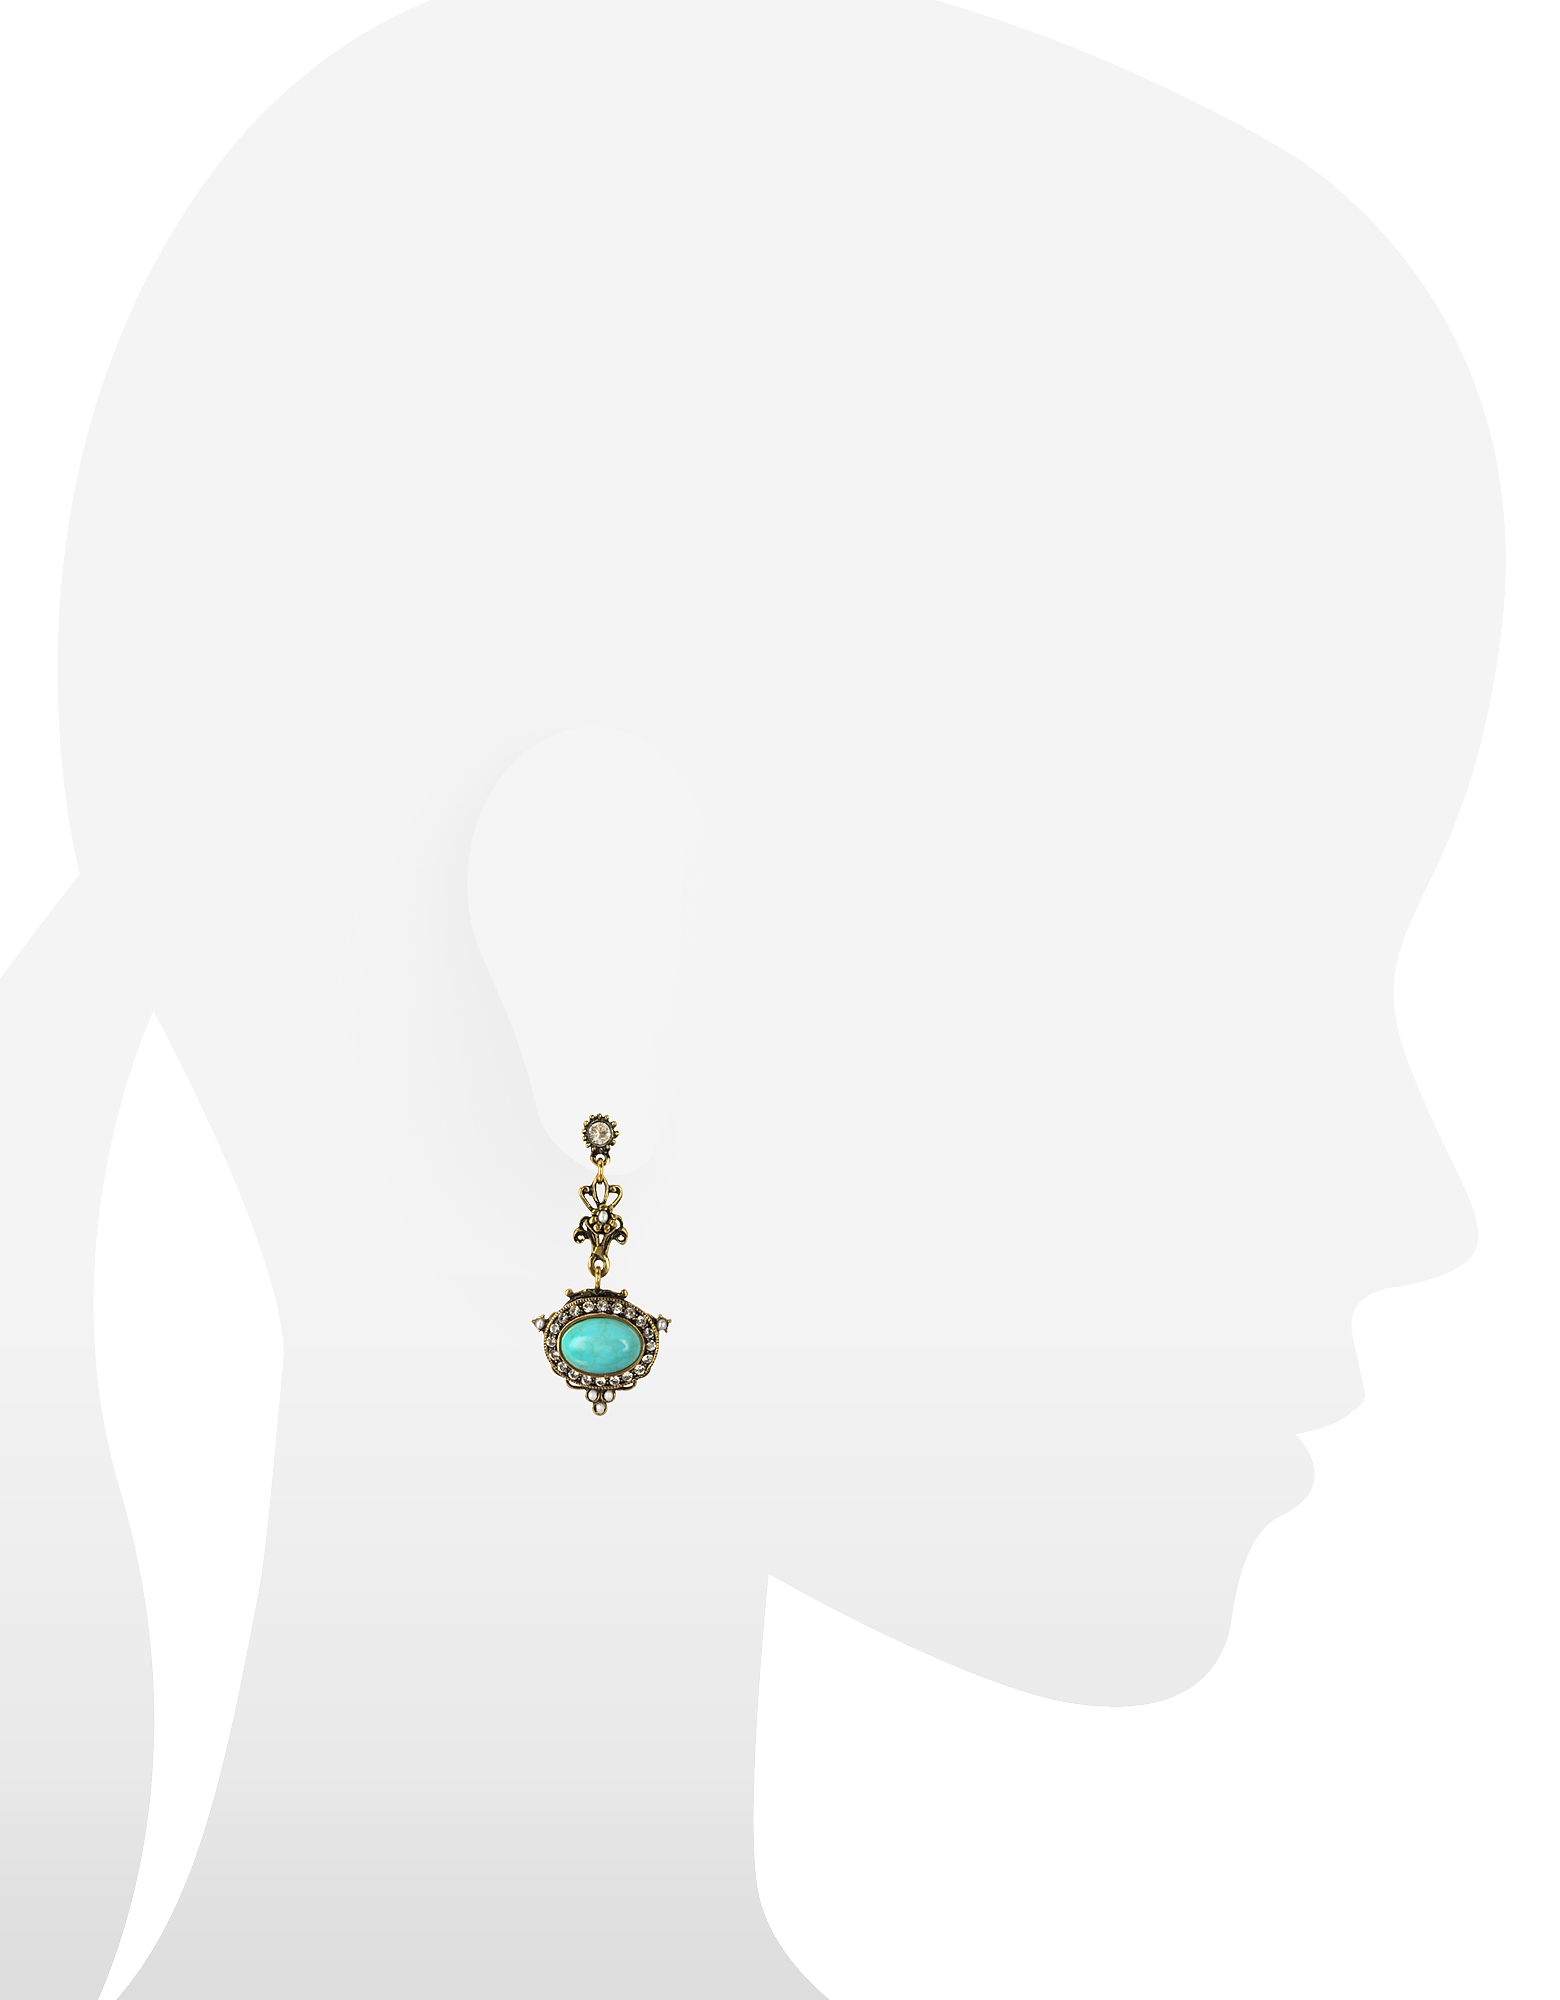 Magnesite Goldtone Brass Earrings w/Crystals от Forzieri.com INT